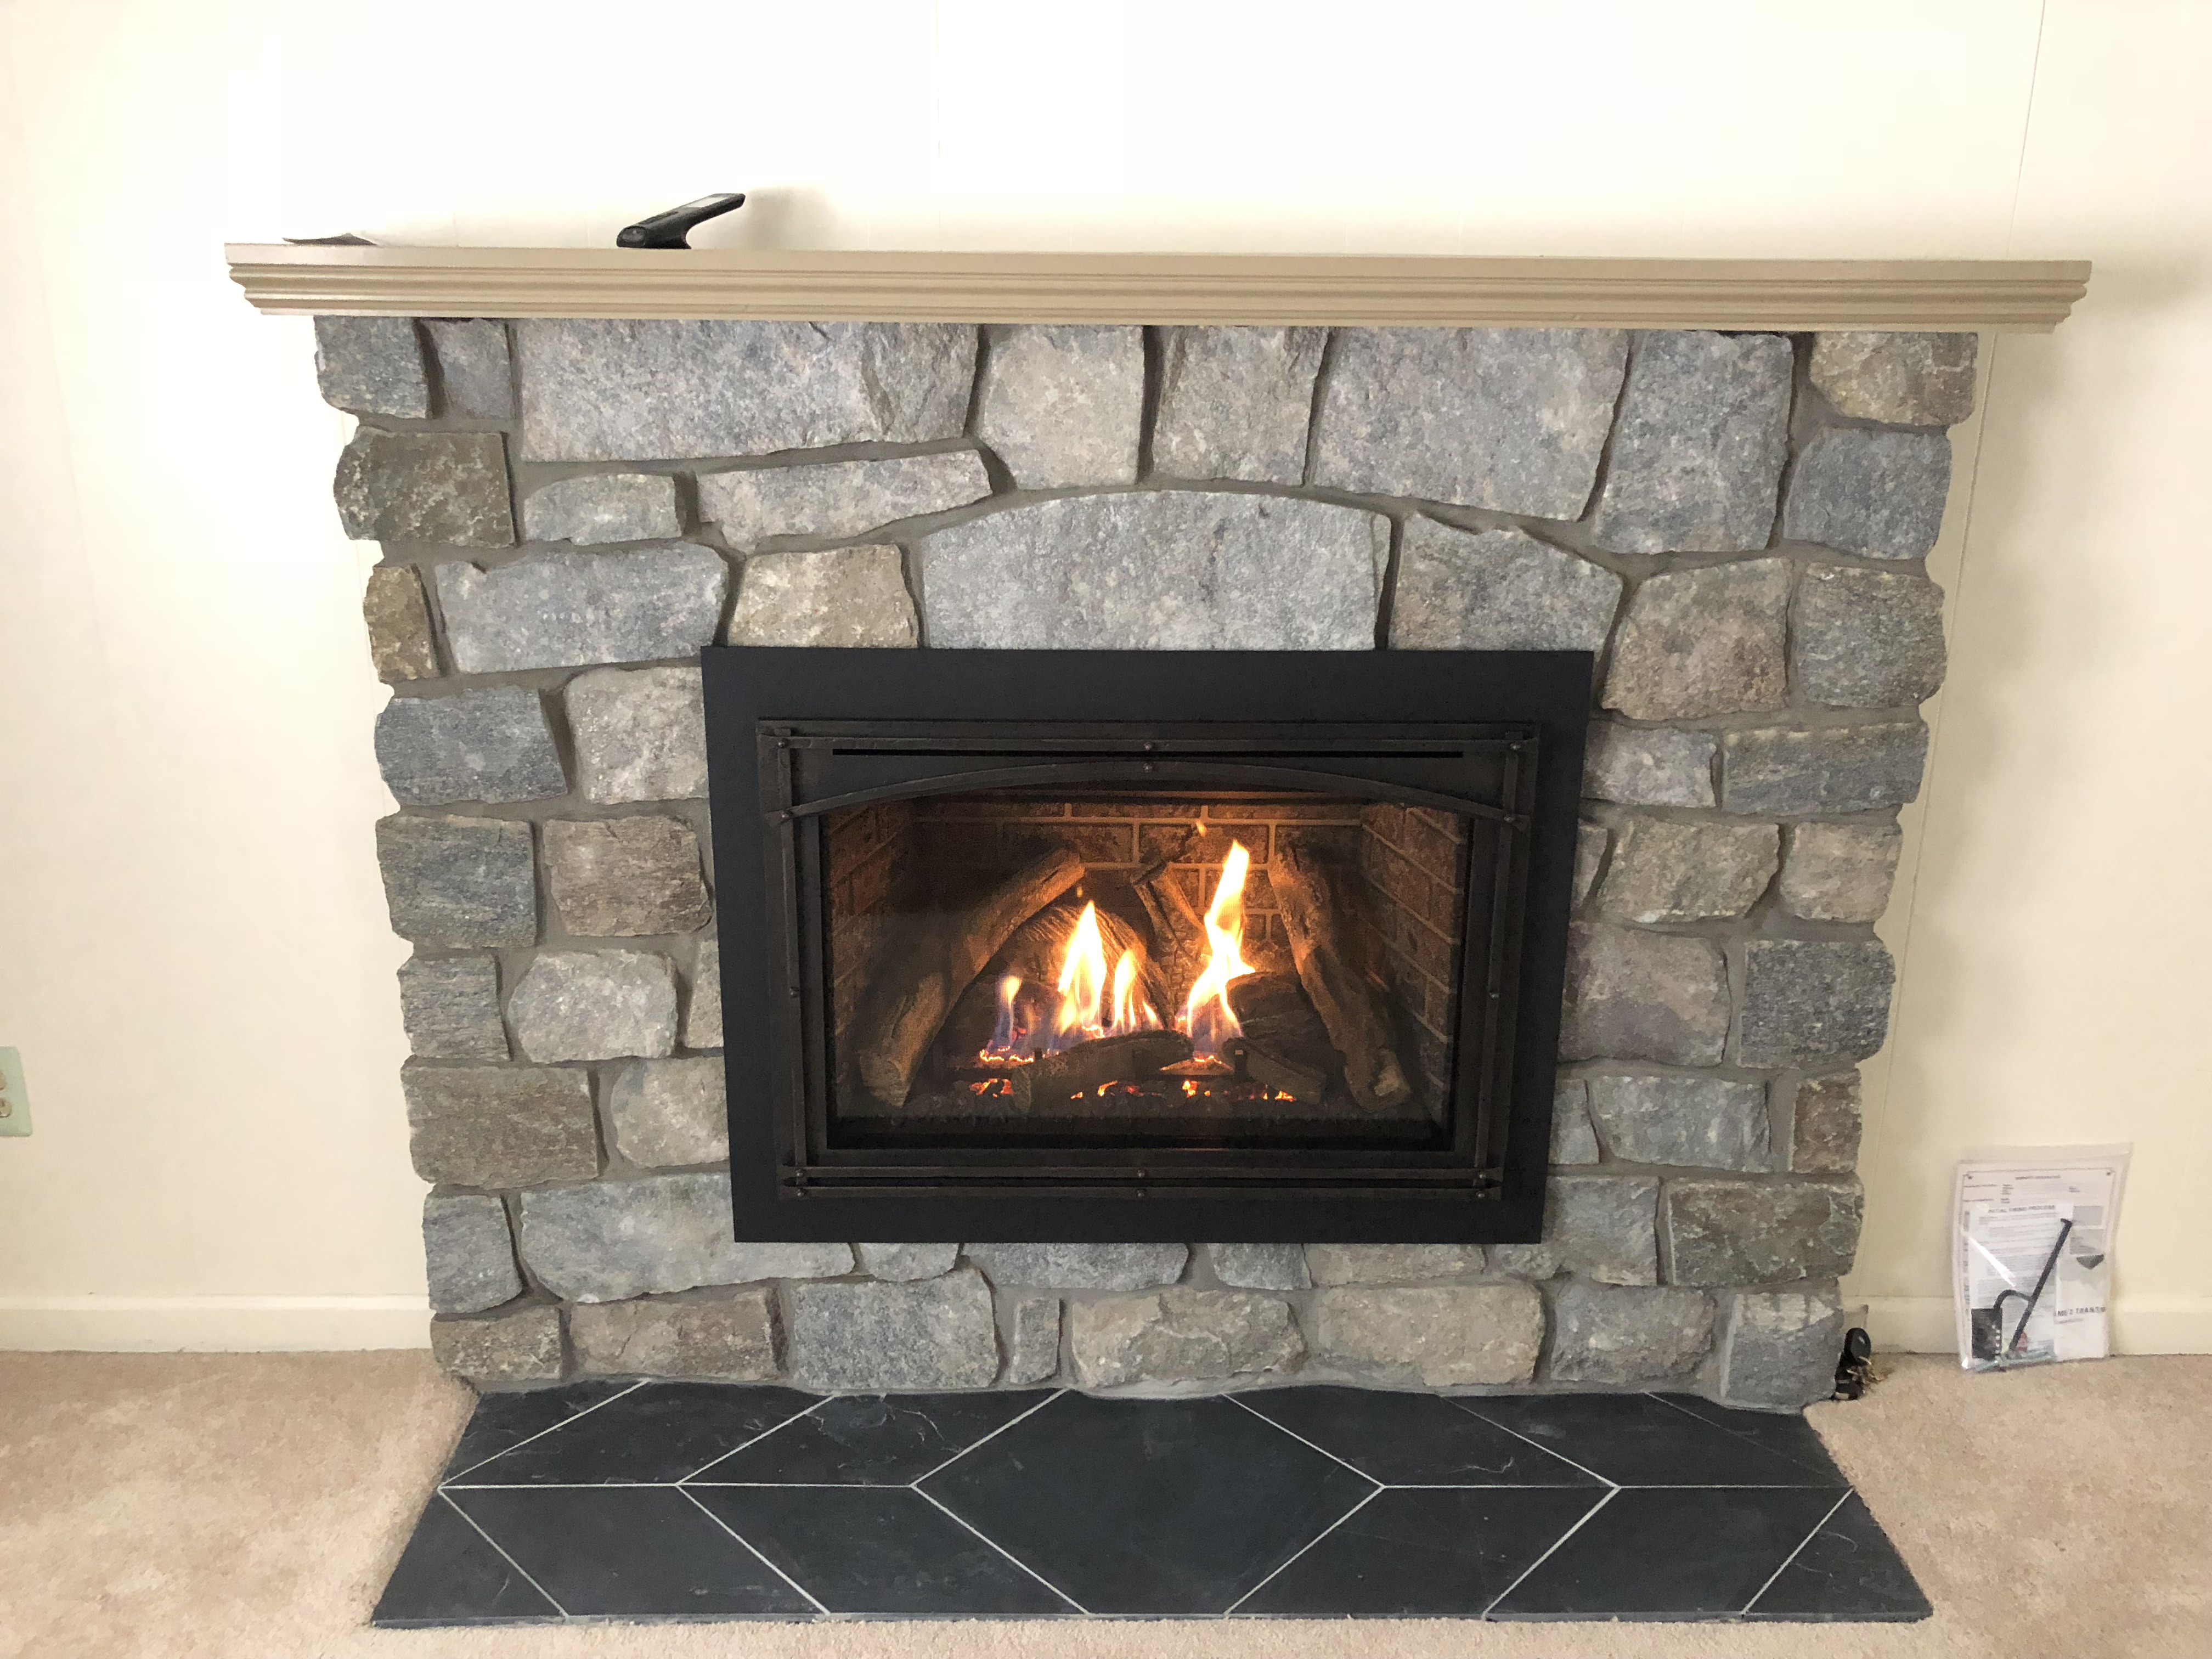 Image of a Chaska 34-L gas insert by Kozy Heat featuring Traditional Brick Interior and stone facing.